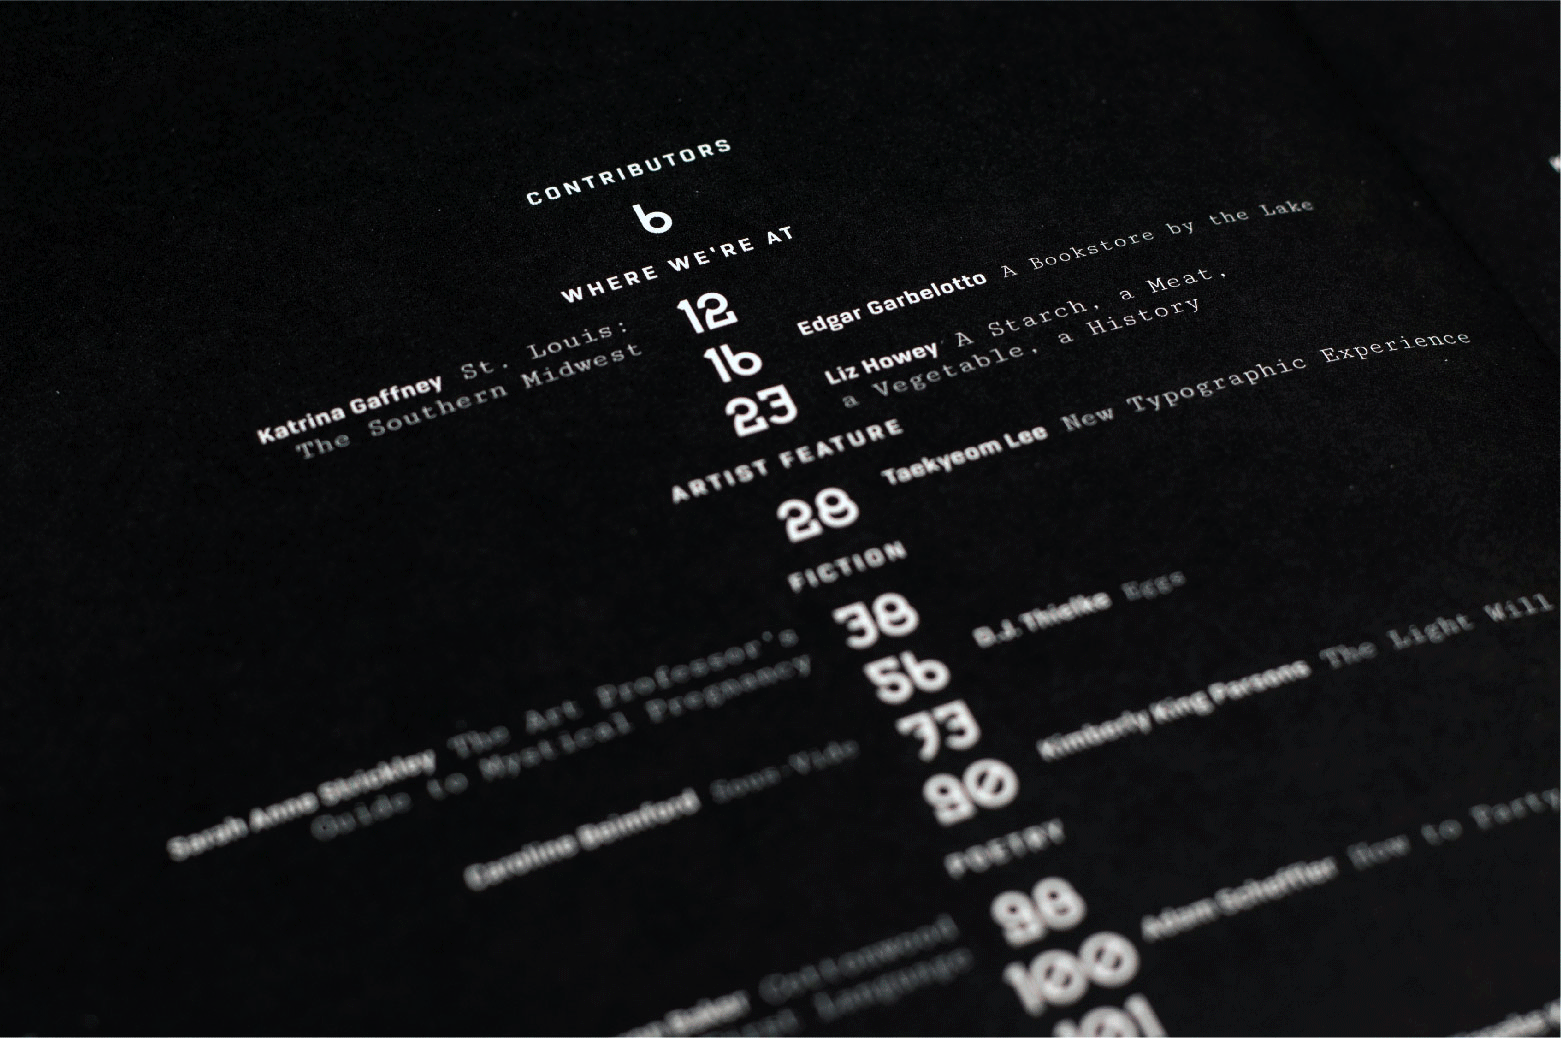 detail_table of contents.png